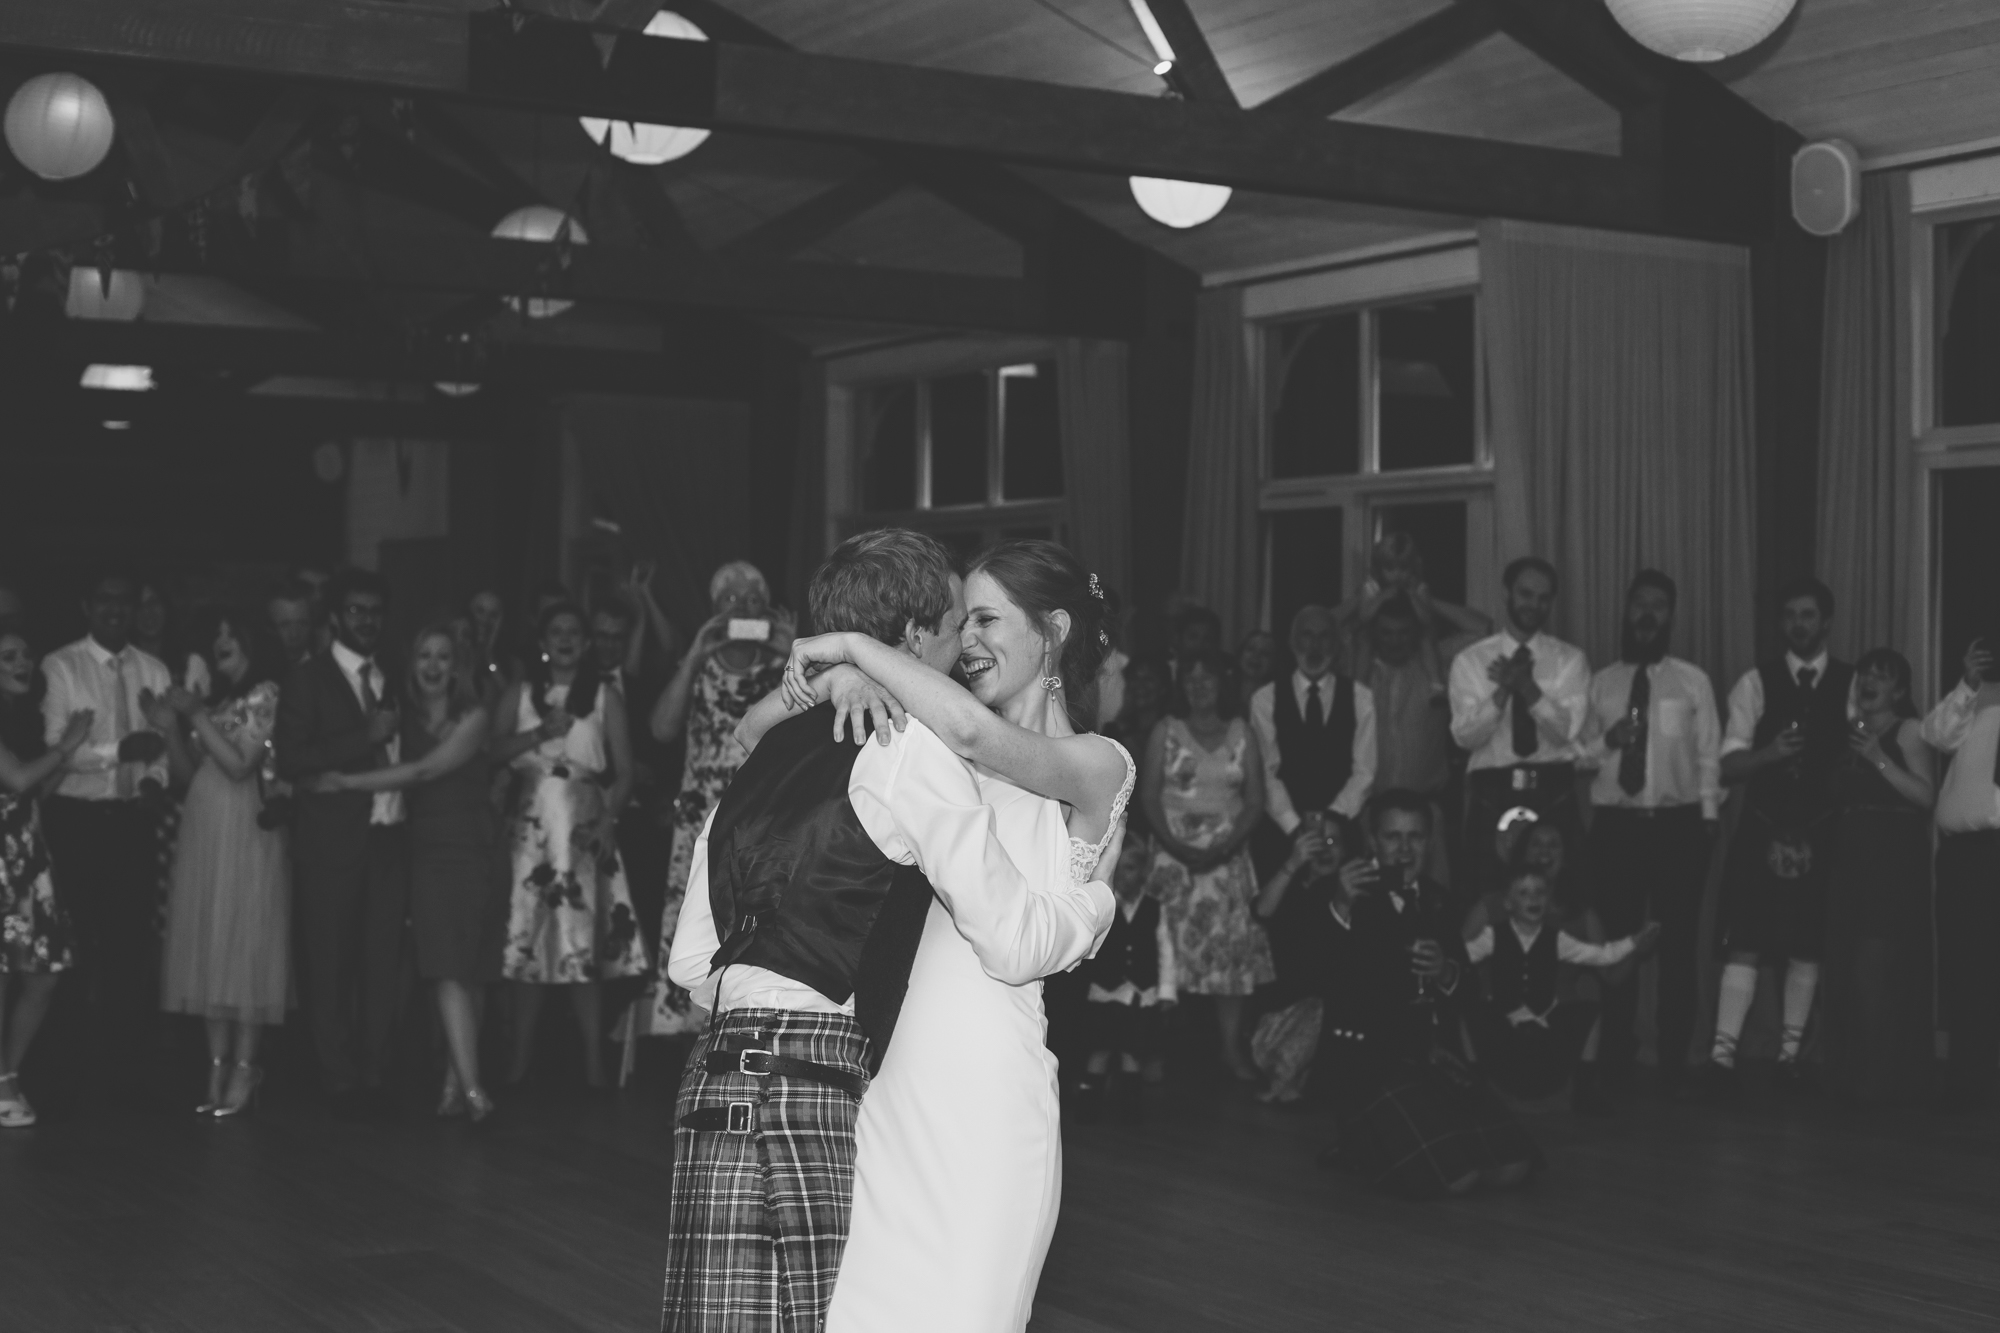 first dance at barn at Barra castle, Barra castle wedding, the barn at barra, Vivienne Elizabeth Photography, wedding photographers aberdeen, aberdeen wedding photography, wedding photographer Scotland, wedding photographers Scotland, Scottish wedding photographers